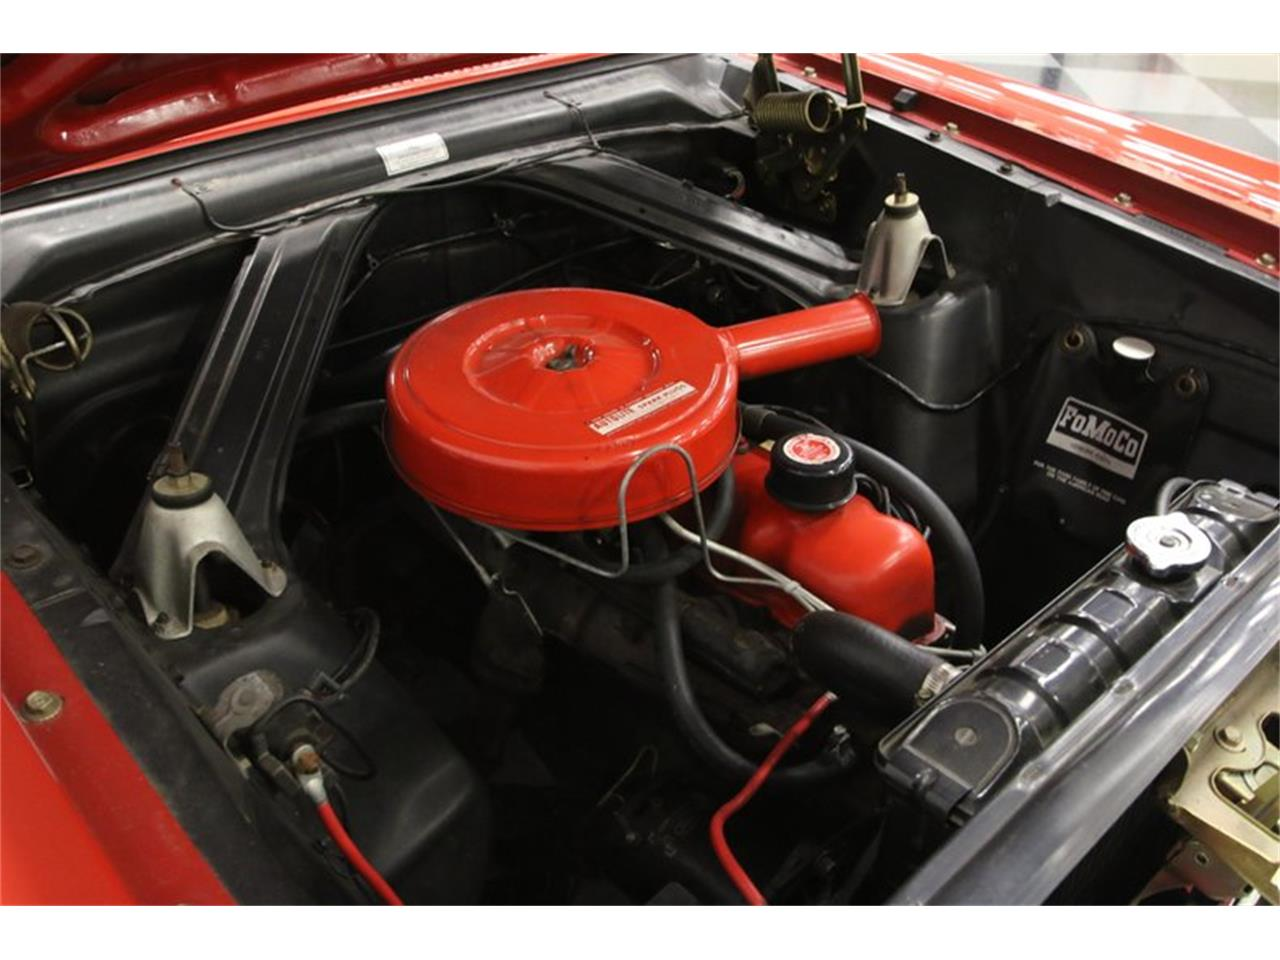 1964 Ford Falcon Futura for sale in Lavergne, TN – photo 36